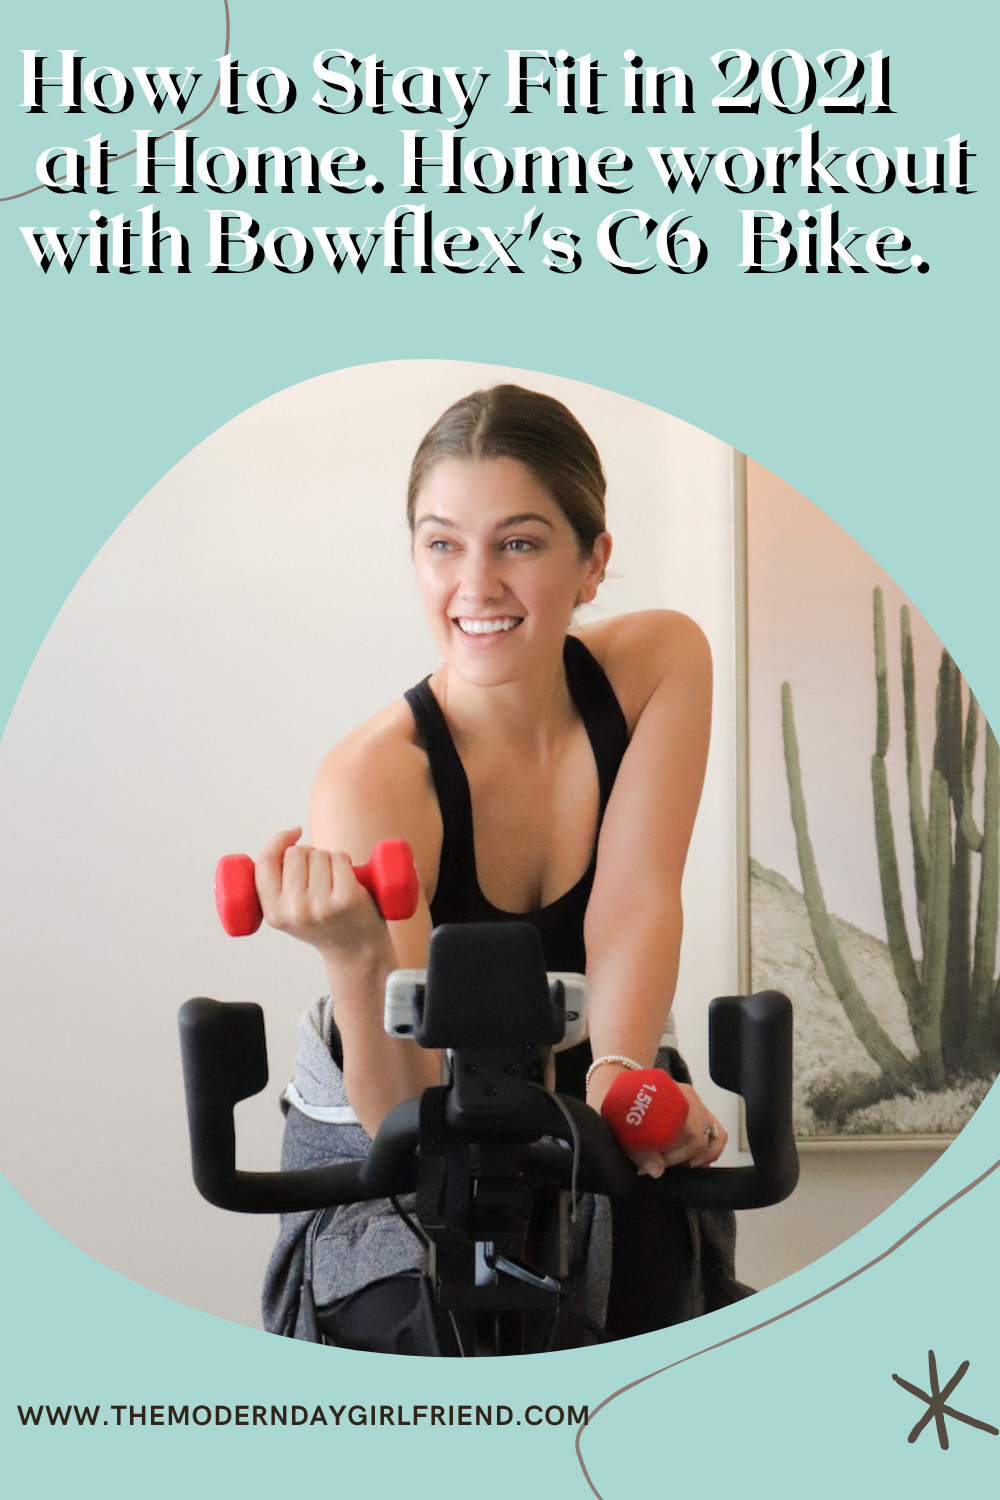 How to Stay Fit in 2021 at Home. Home workout with Bowflex's C6 Bike.